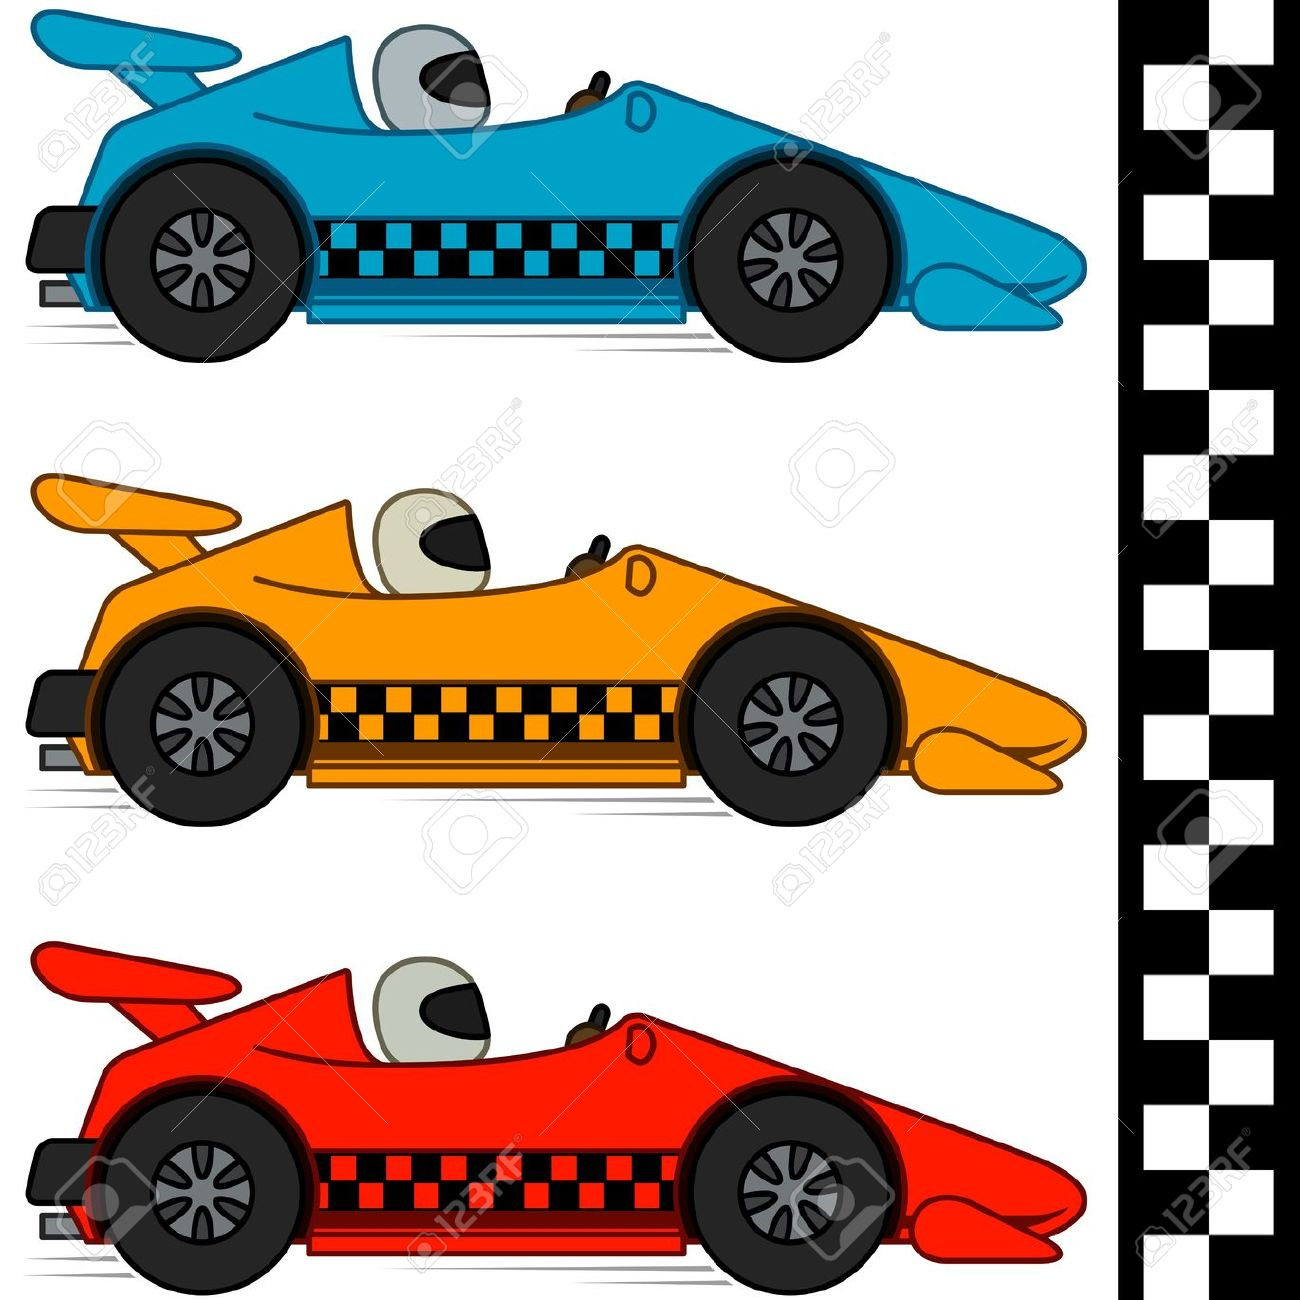 Racing Stock Vector Illustration And Royalty Free Racing Clipart: https://clipartion.com/free-clipart-12324